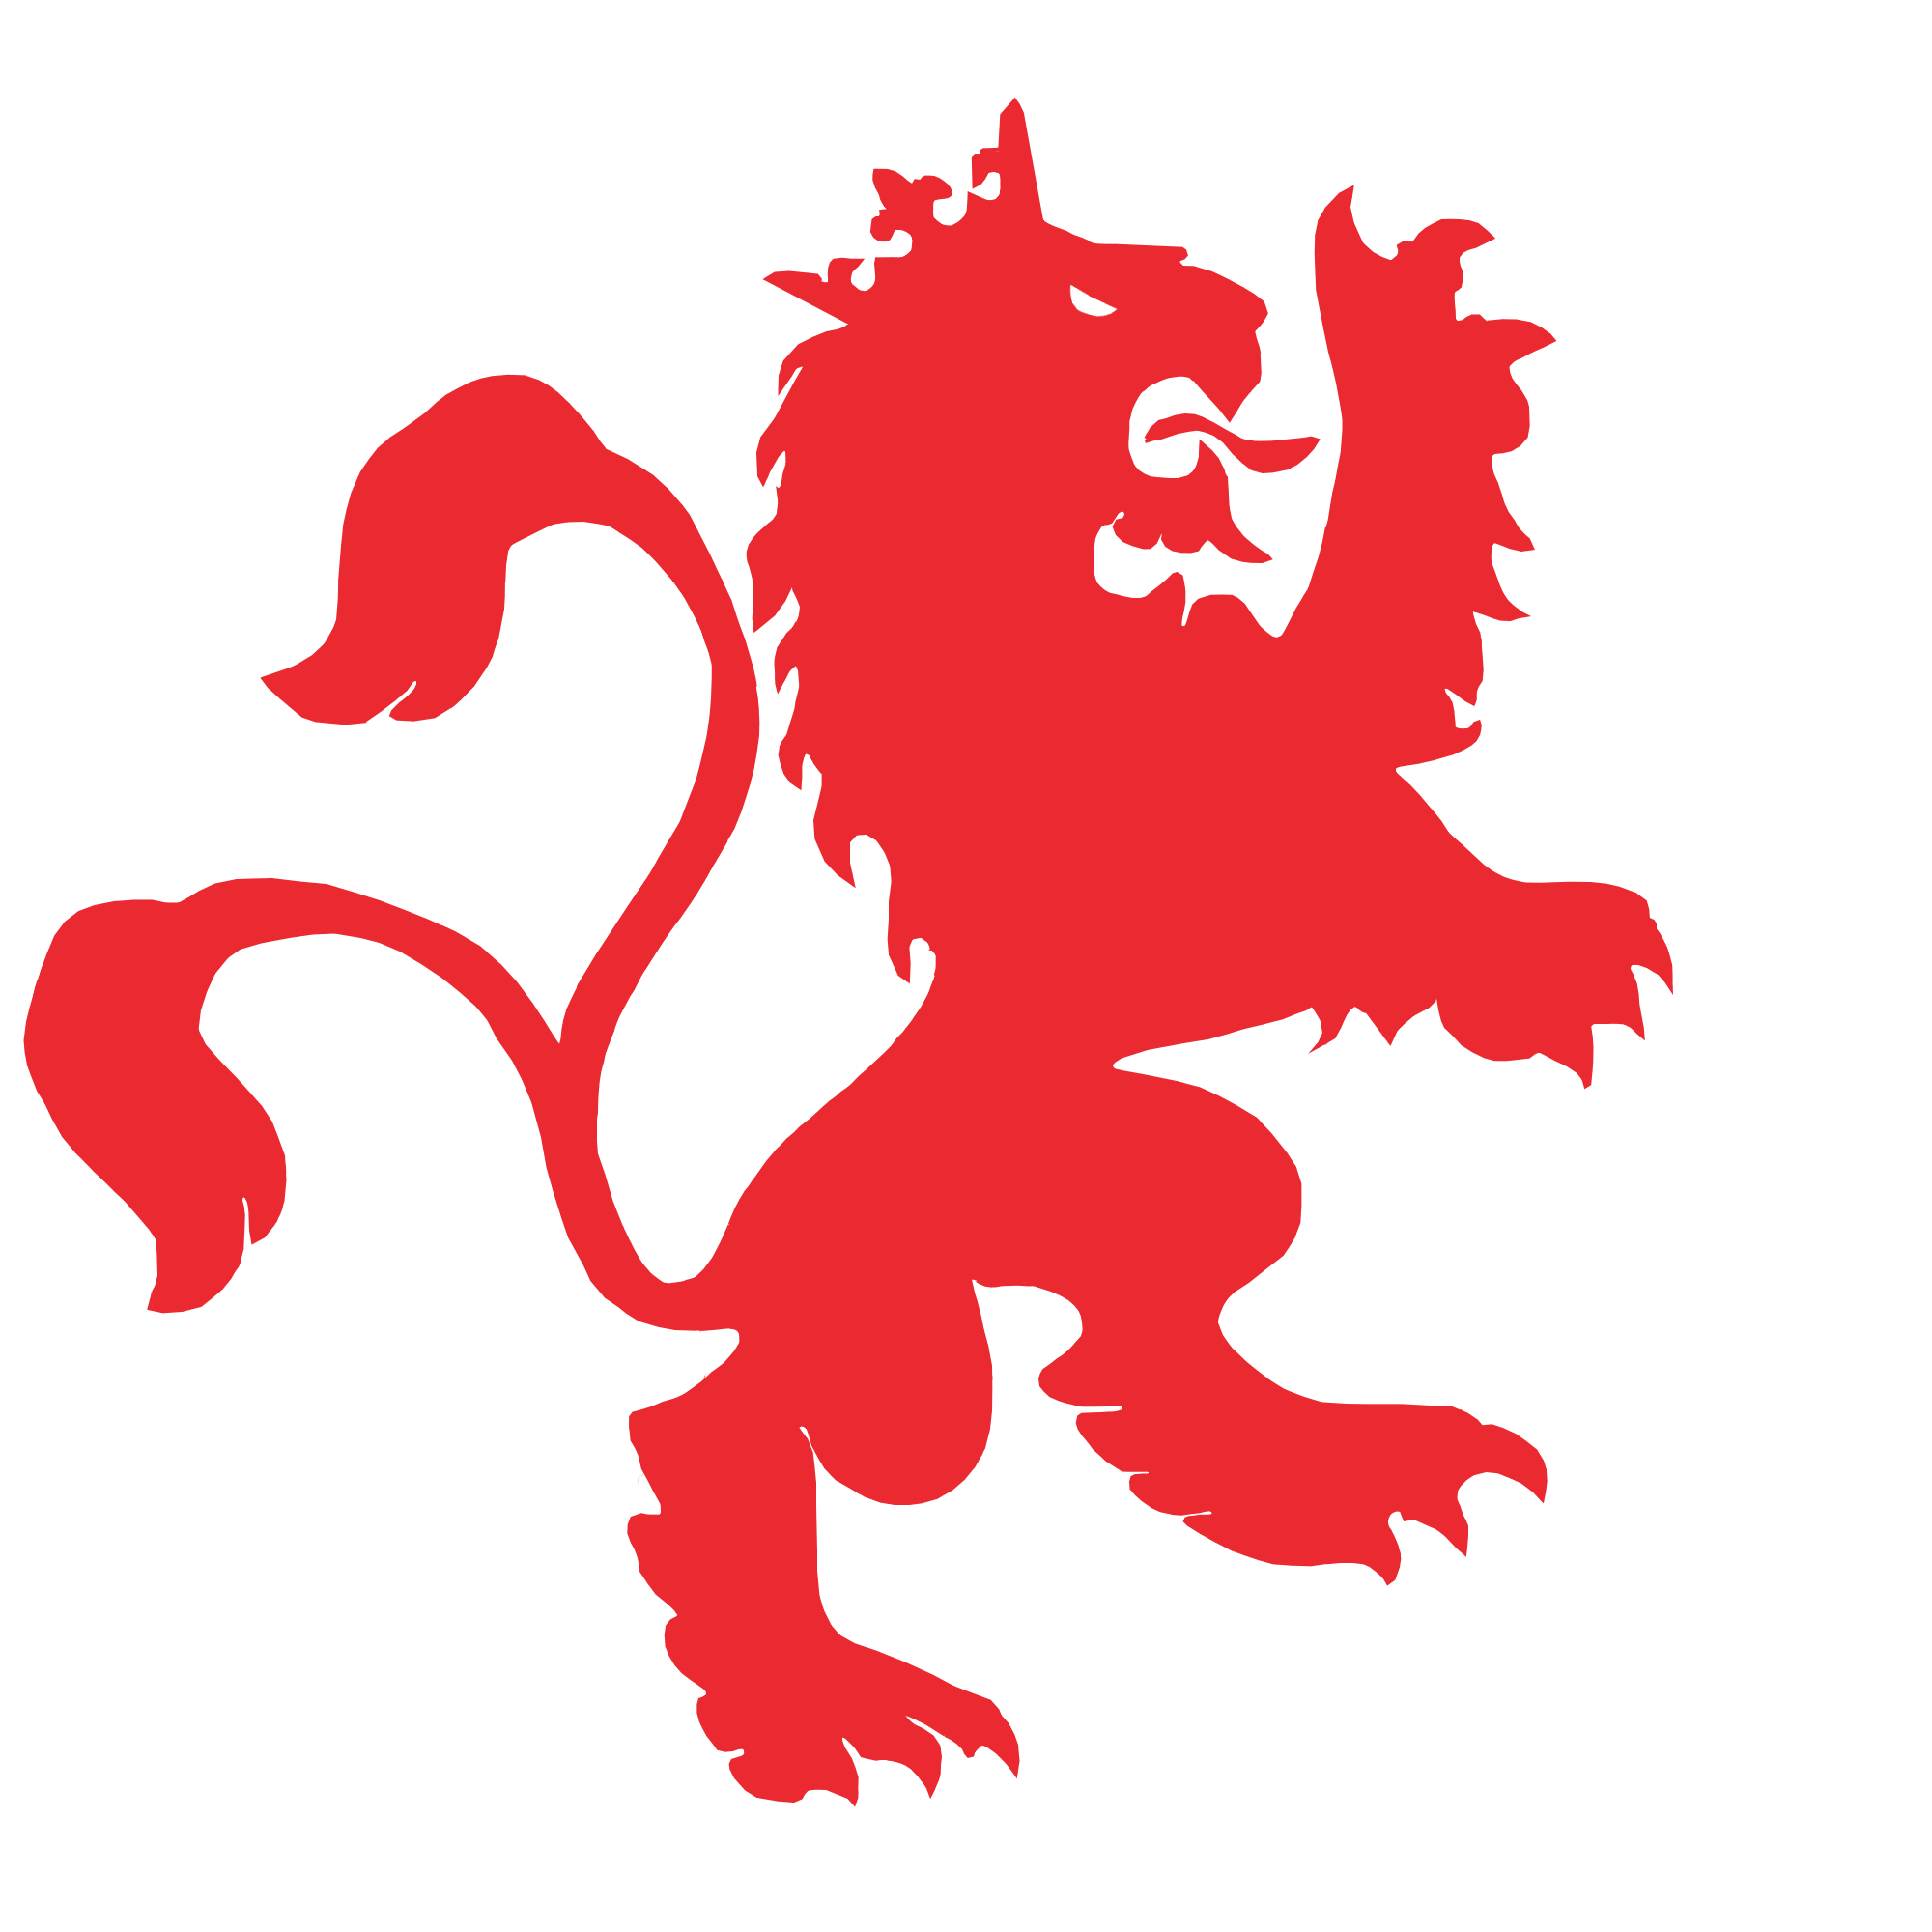 Lions vector red lion. Logos